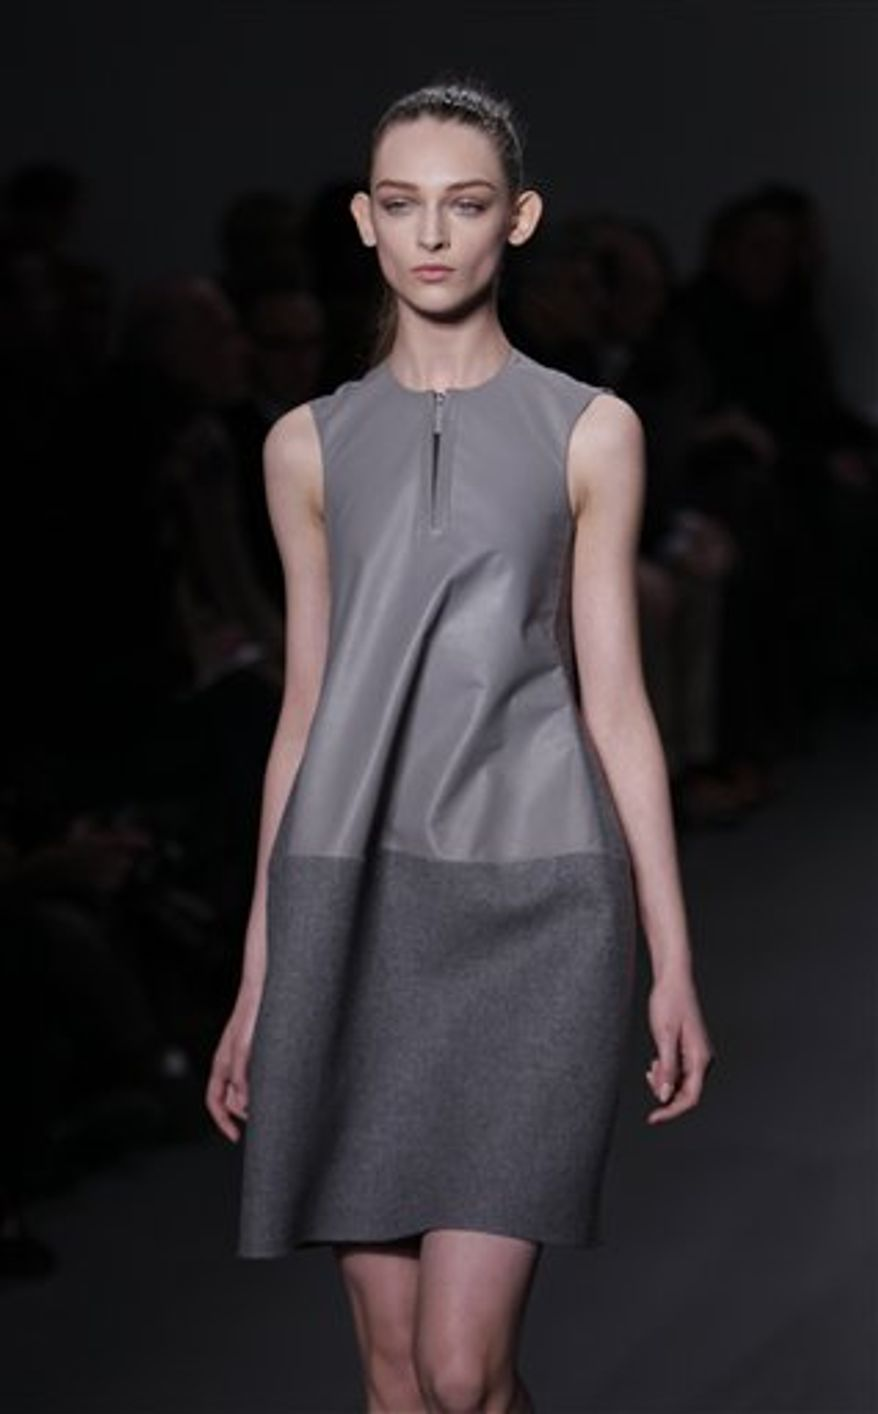 Fall 2011 fashion from Calvin Klein is modeled during Fashion Week in New York, Thursday, Feb. 17, 2011.  (AP Photo/Seth Wenig)